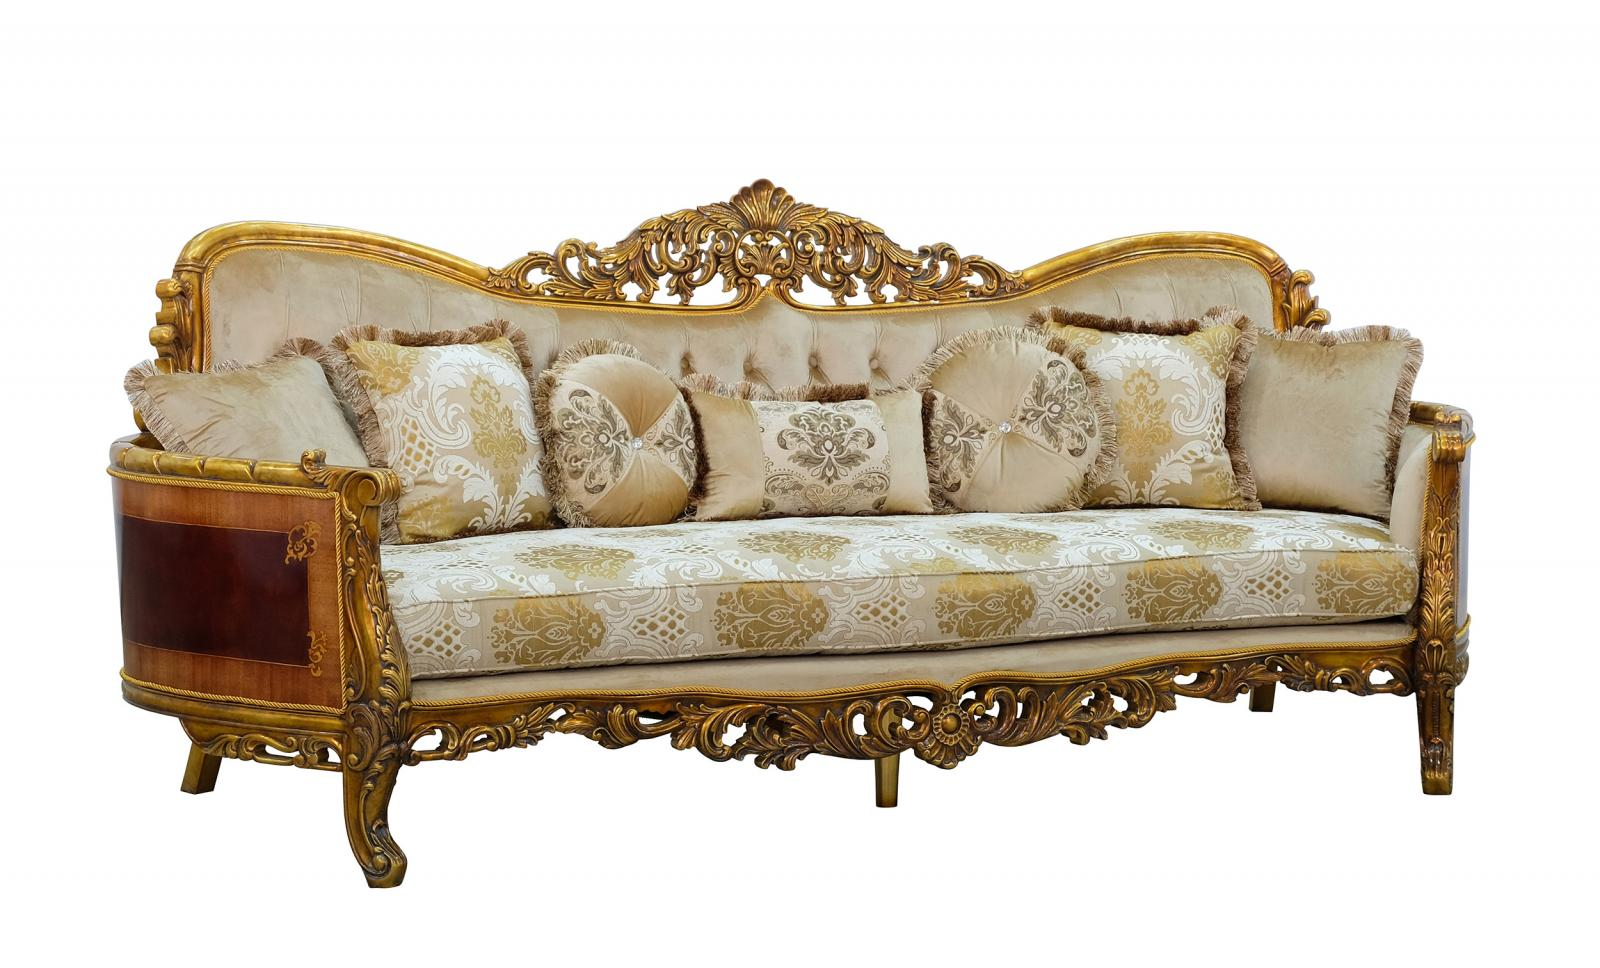 Classic  Traditional Beige  Gold  Antique Wood  Solid Hardwood and Fabric Sofa EUROPEAN FURNITURE 31055-S